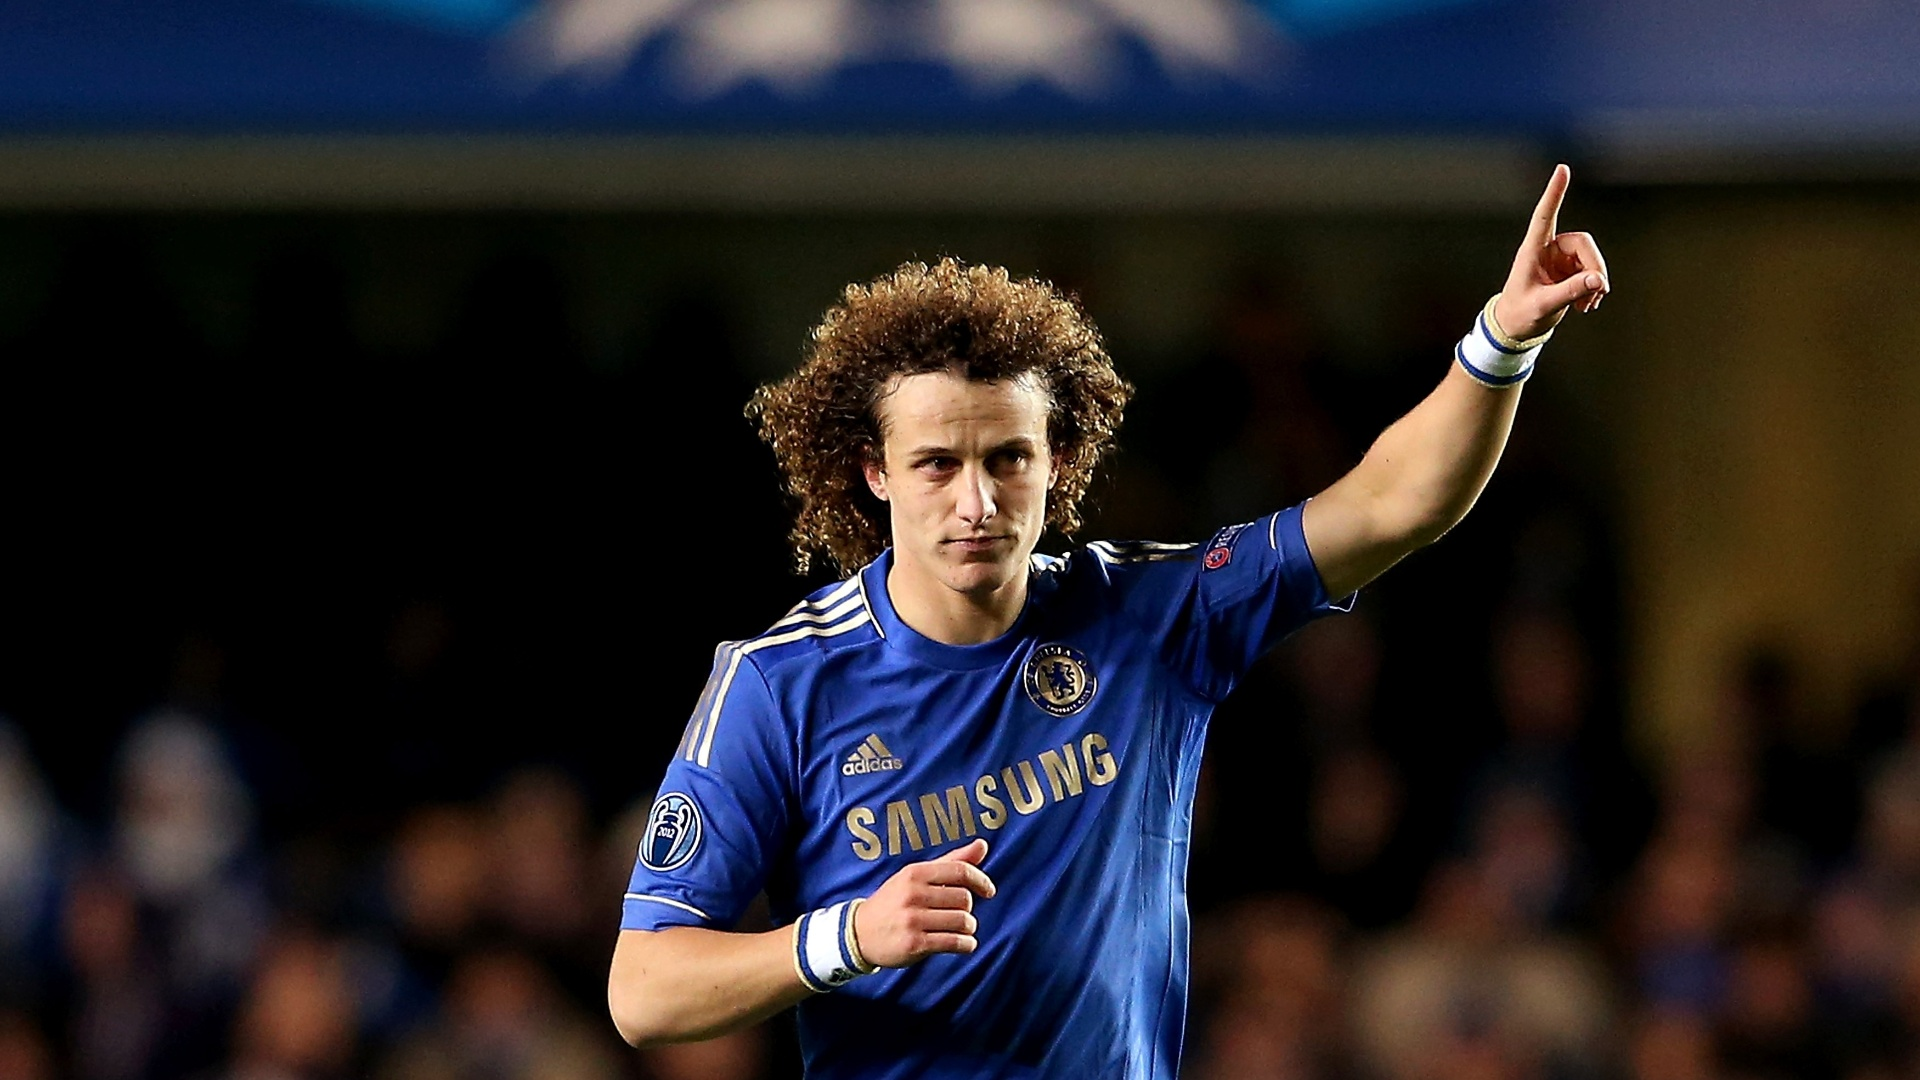 David Luiz: The Man Who Can Change The Outlook Of